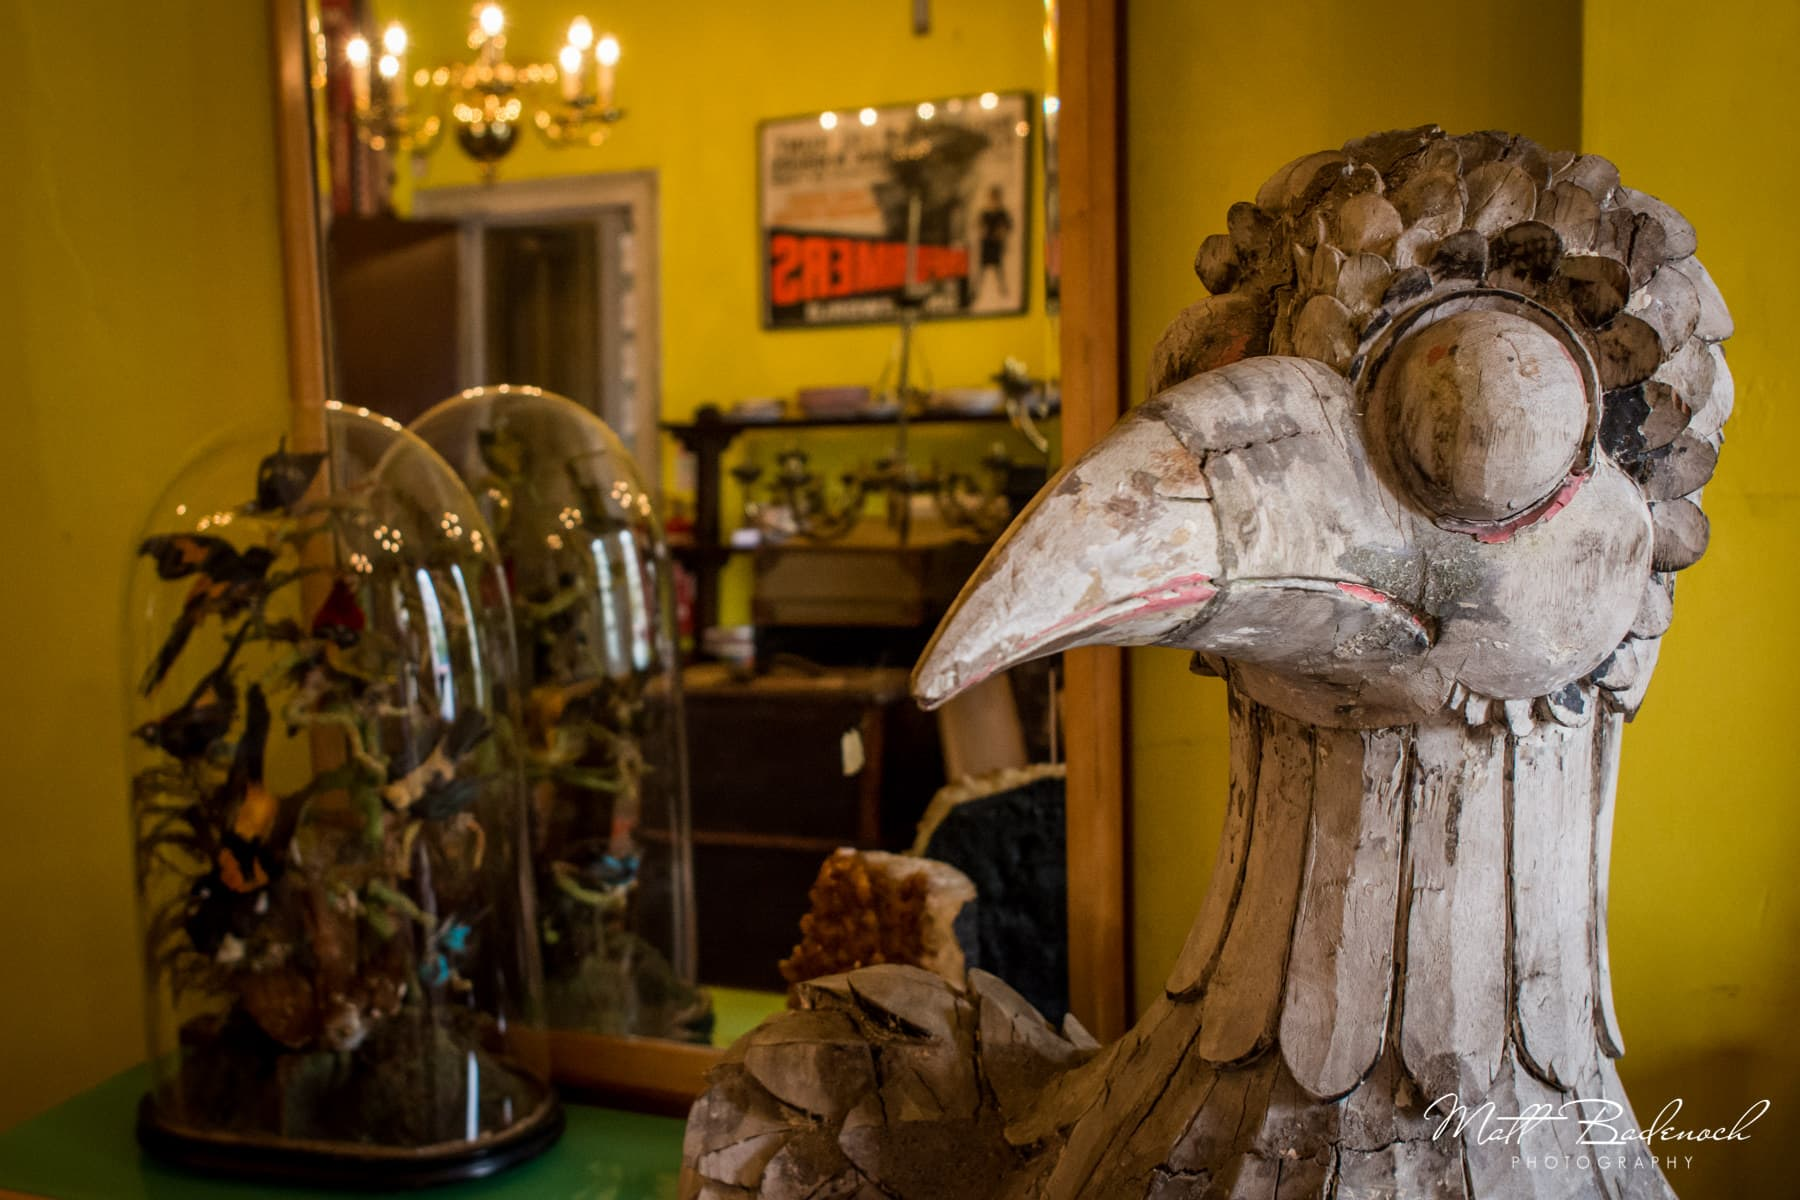 Strange Bird Stature, Brunswick House, London Wedding Venue | Matt Badenoch Photography